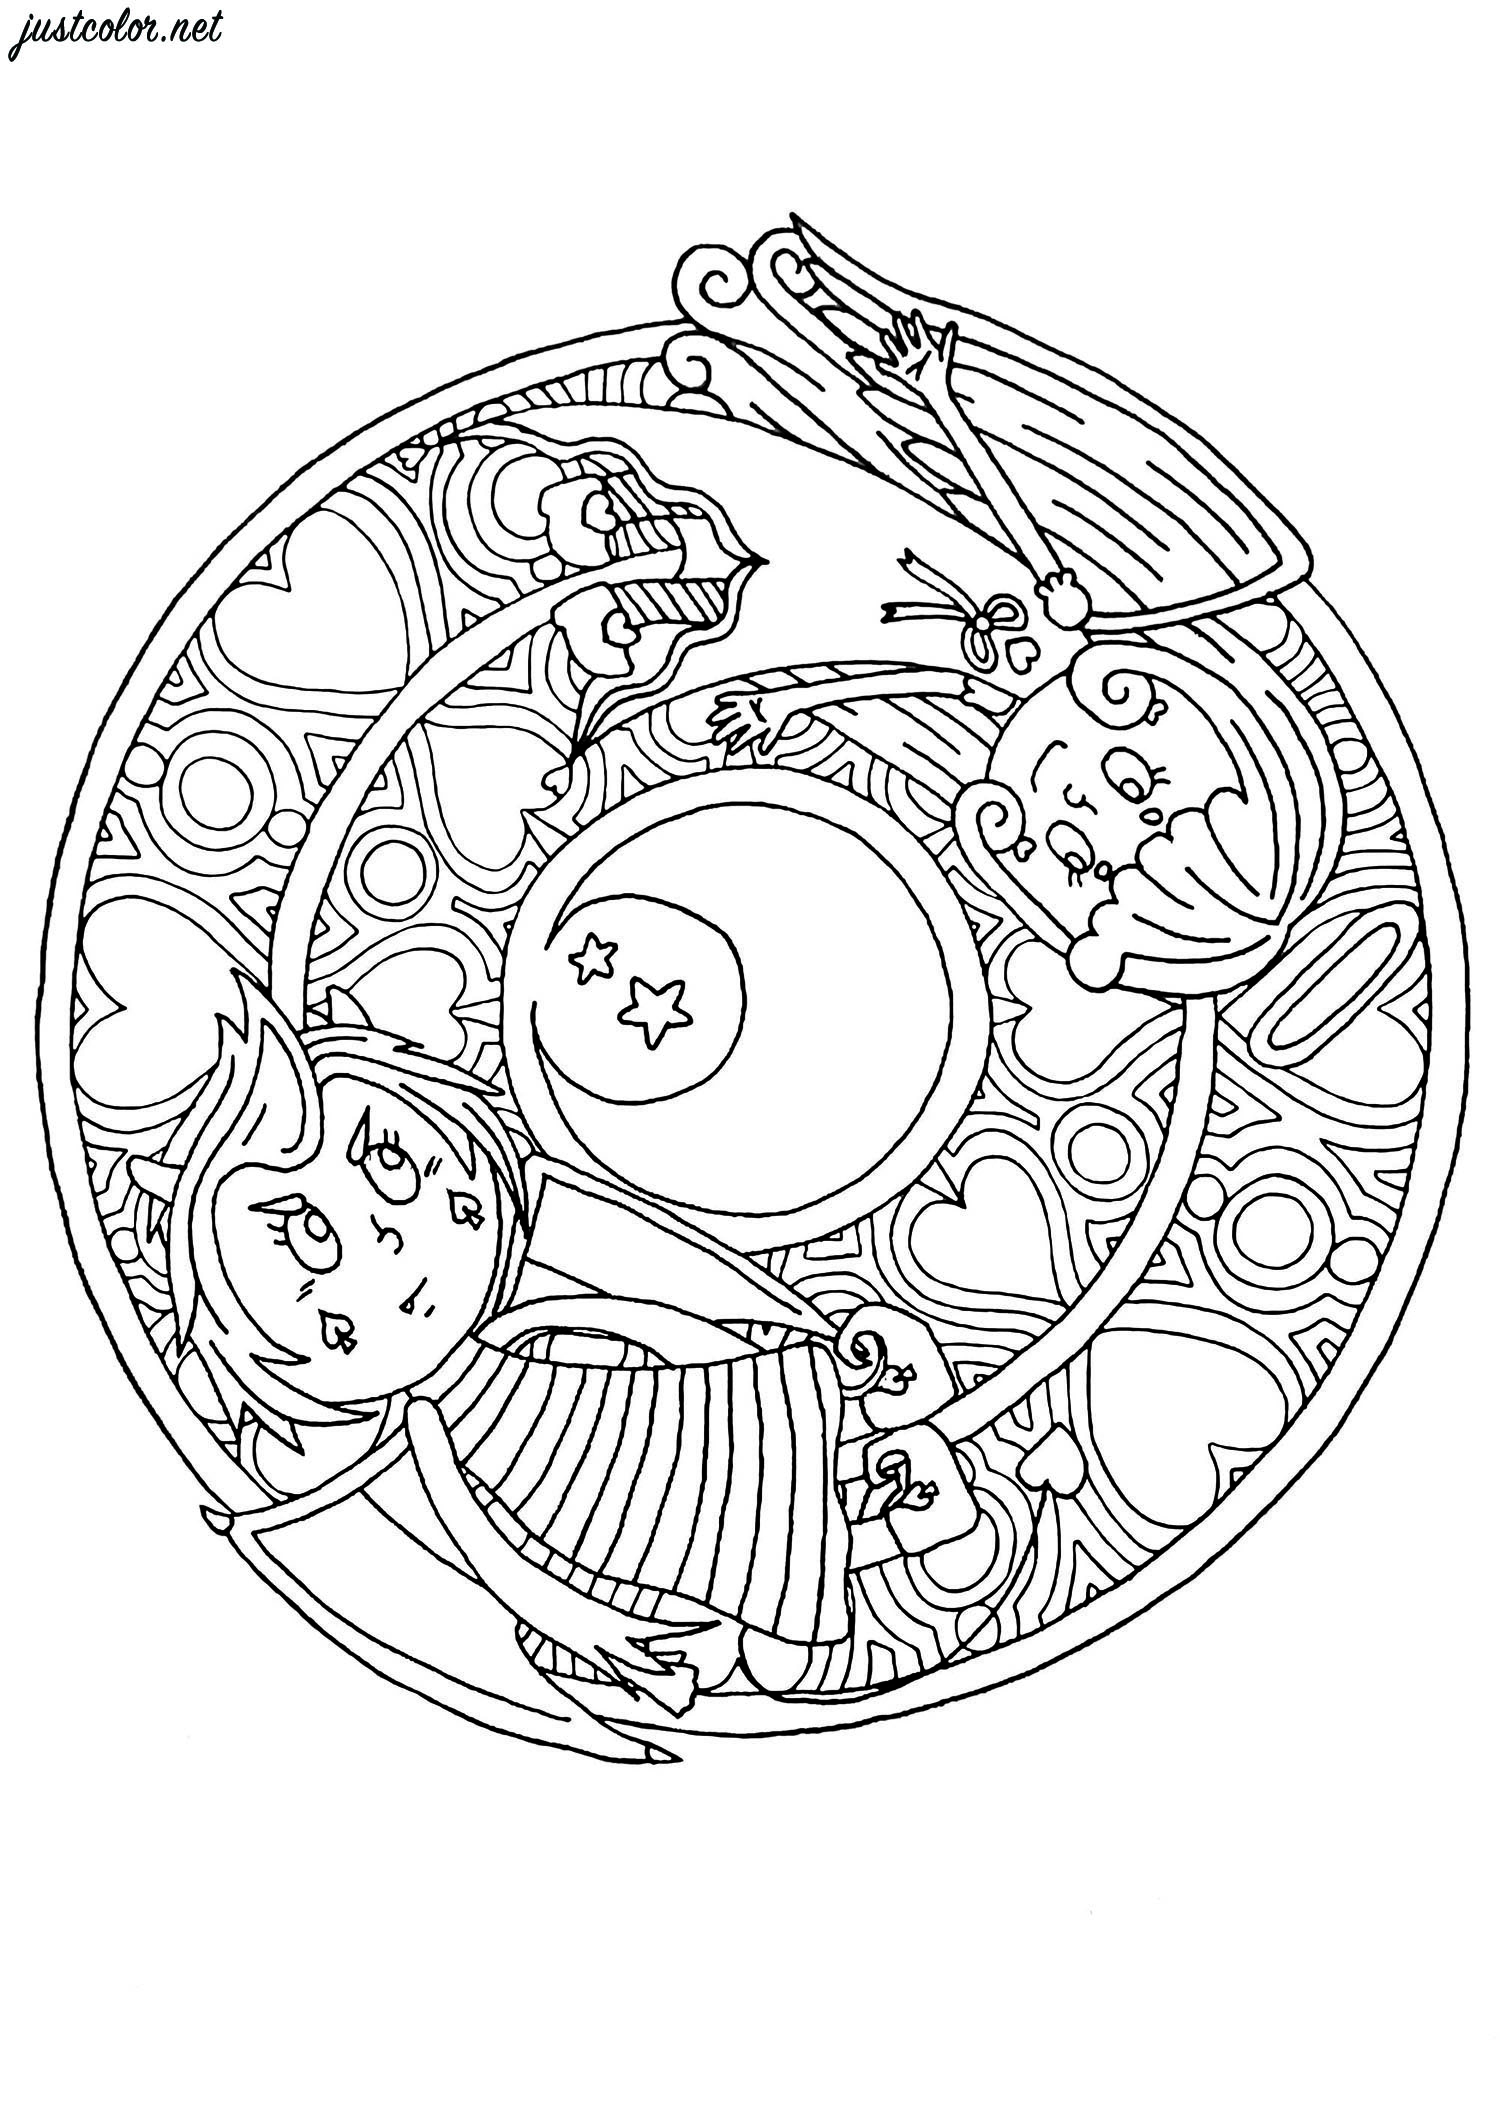 Soothing mandala featuring two young girls : an angel and a demon.